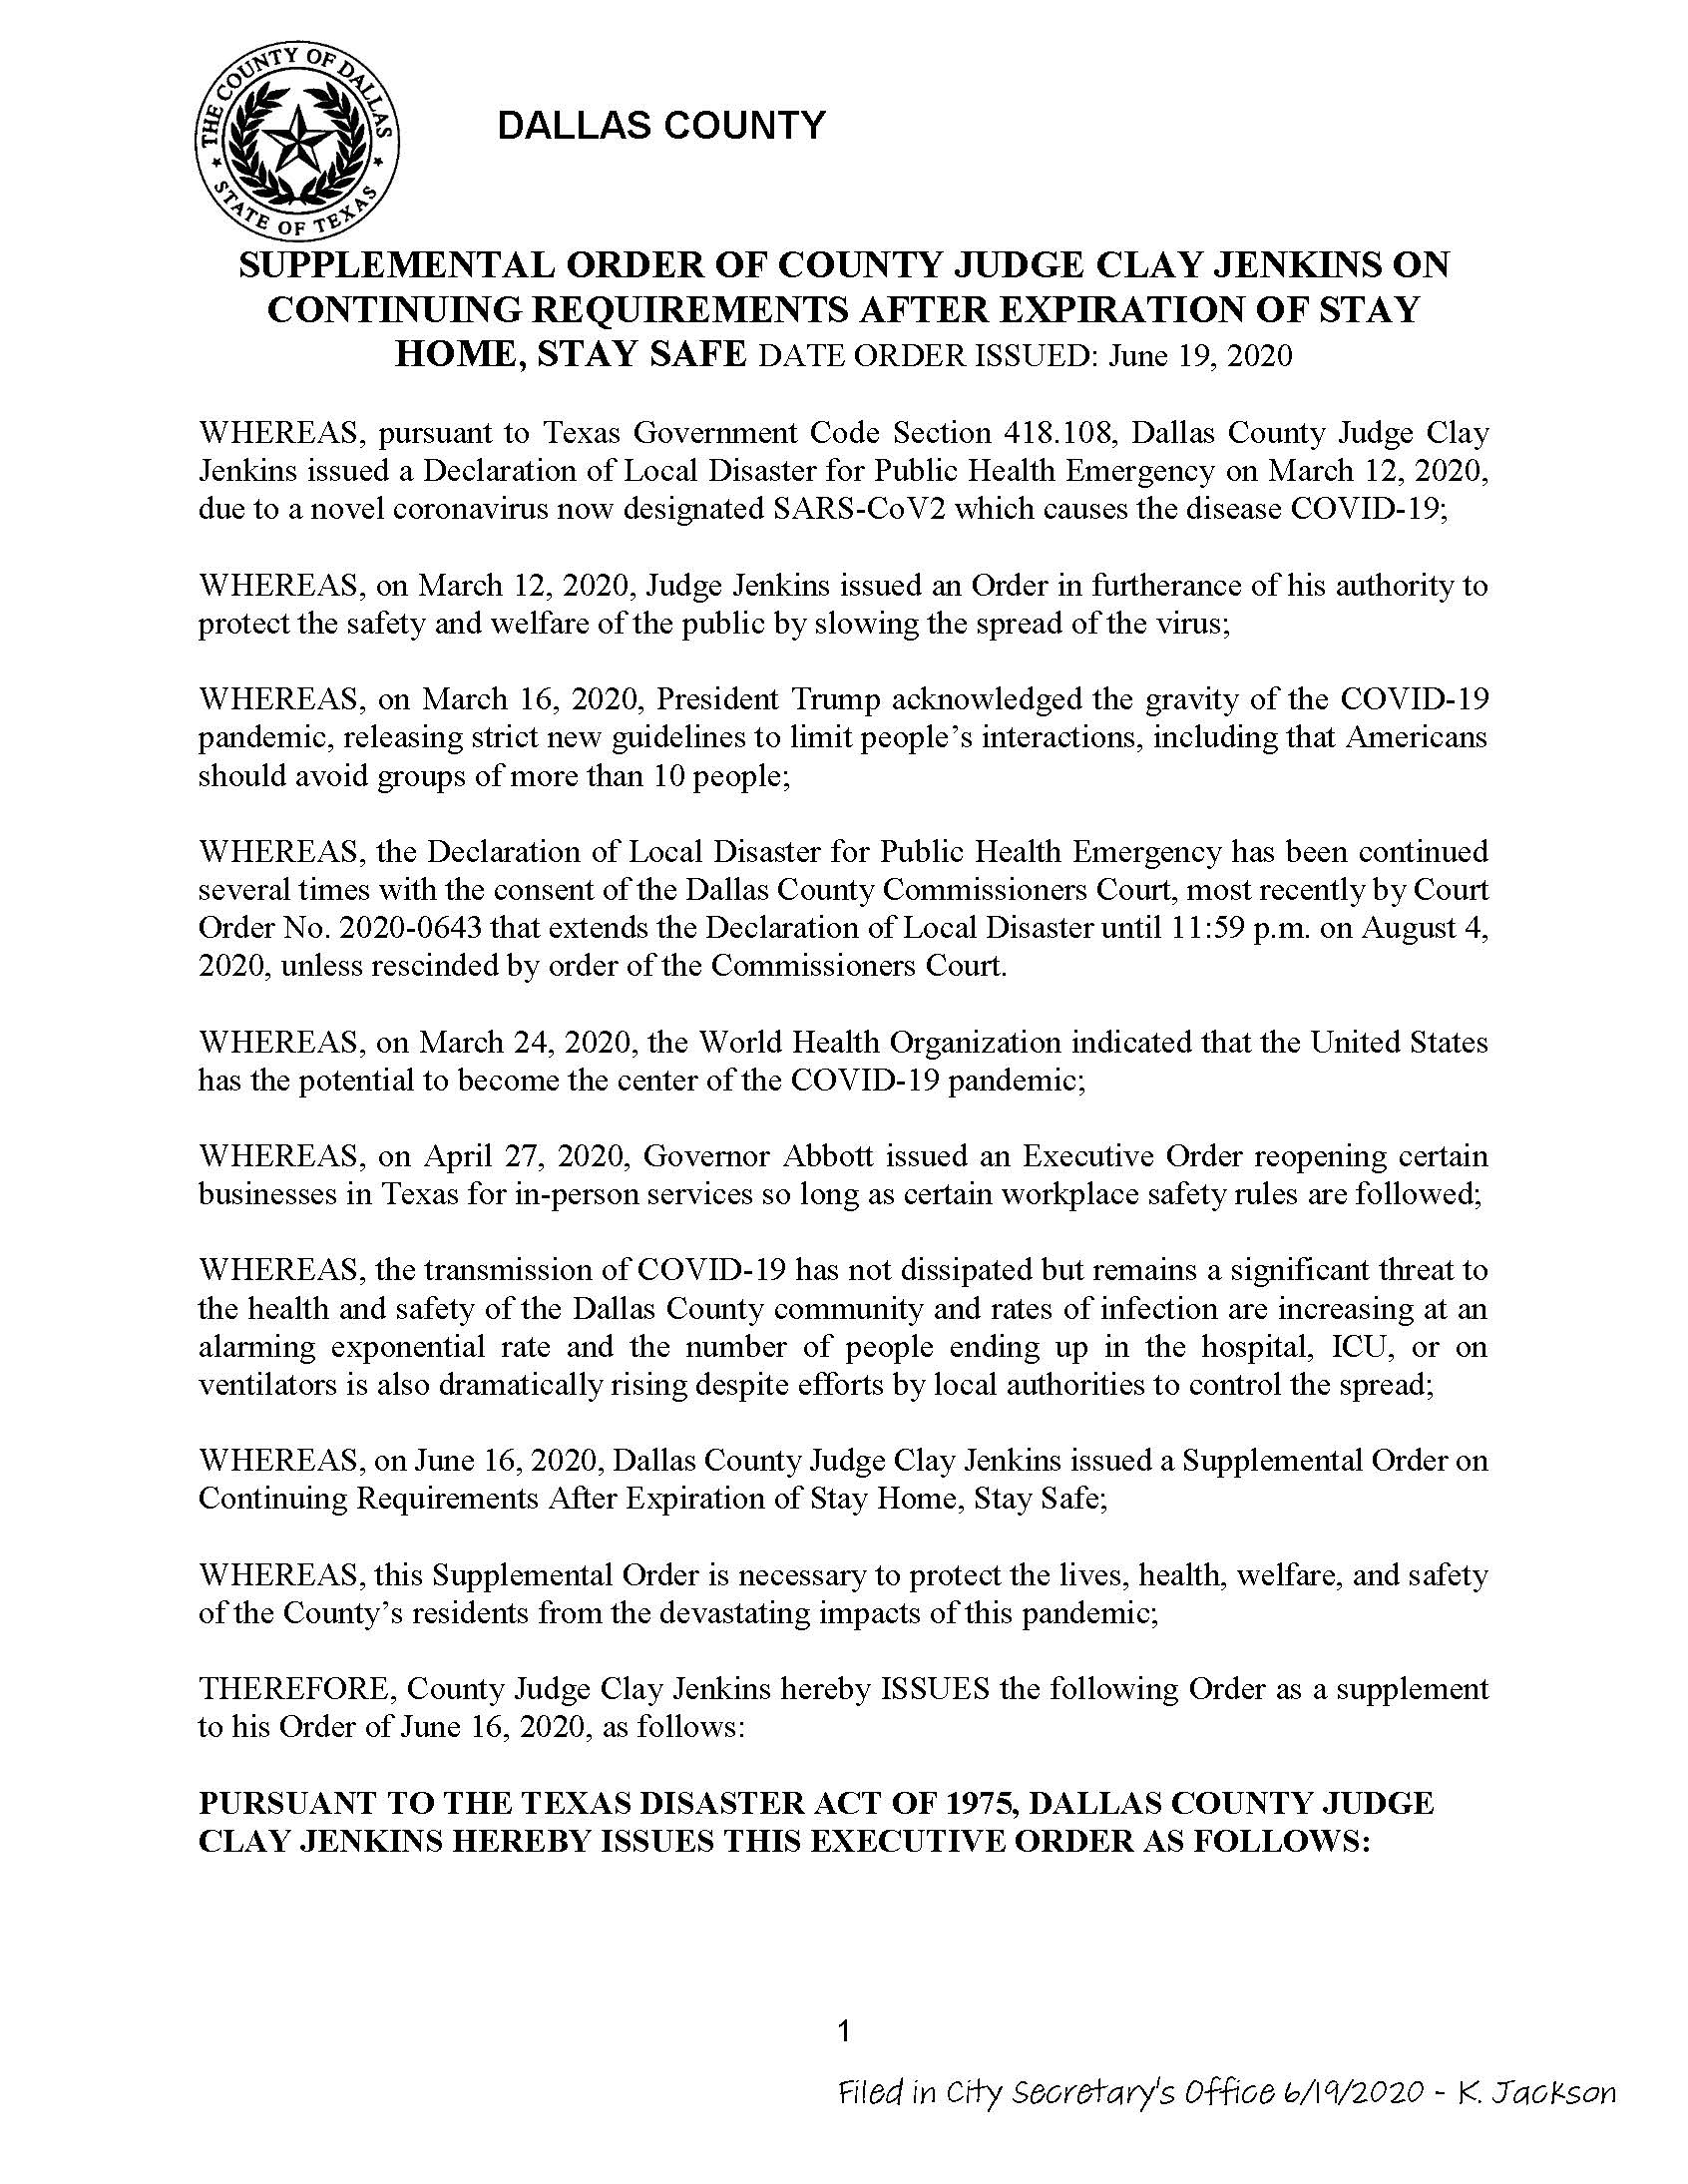 06-19-2020  Dallas County Supplemental Order on Continuing Requirements after Expiration of Stay At